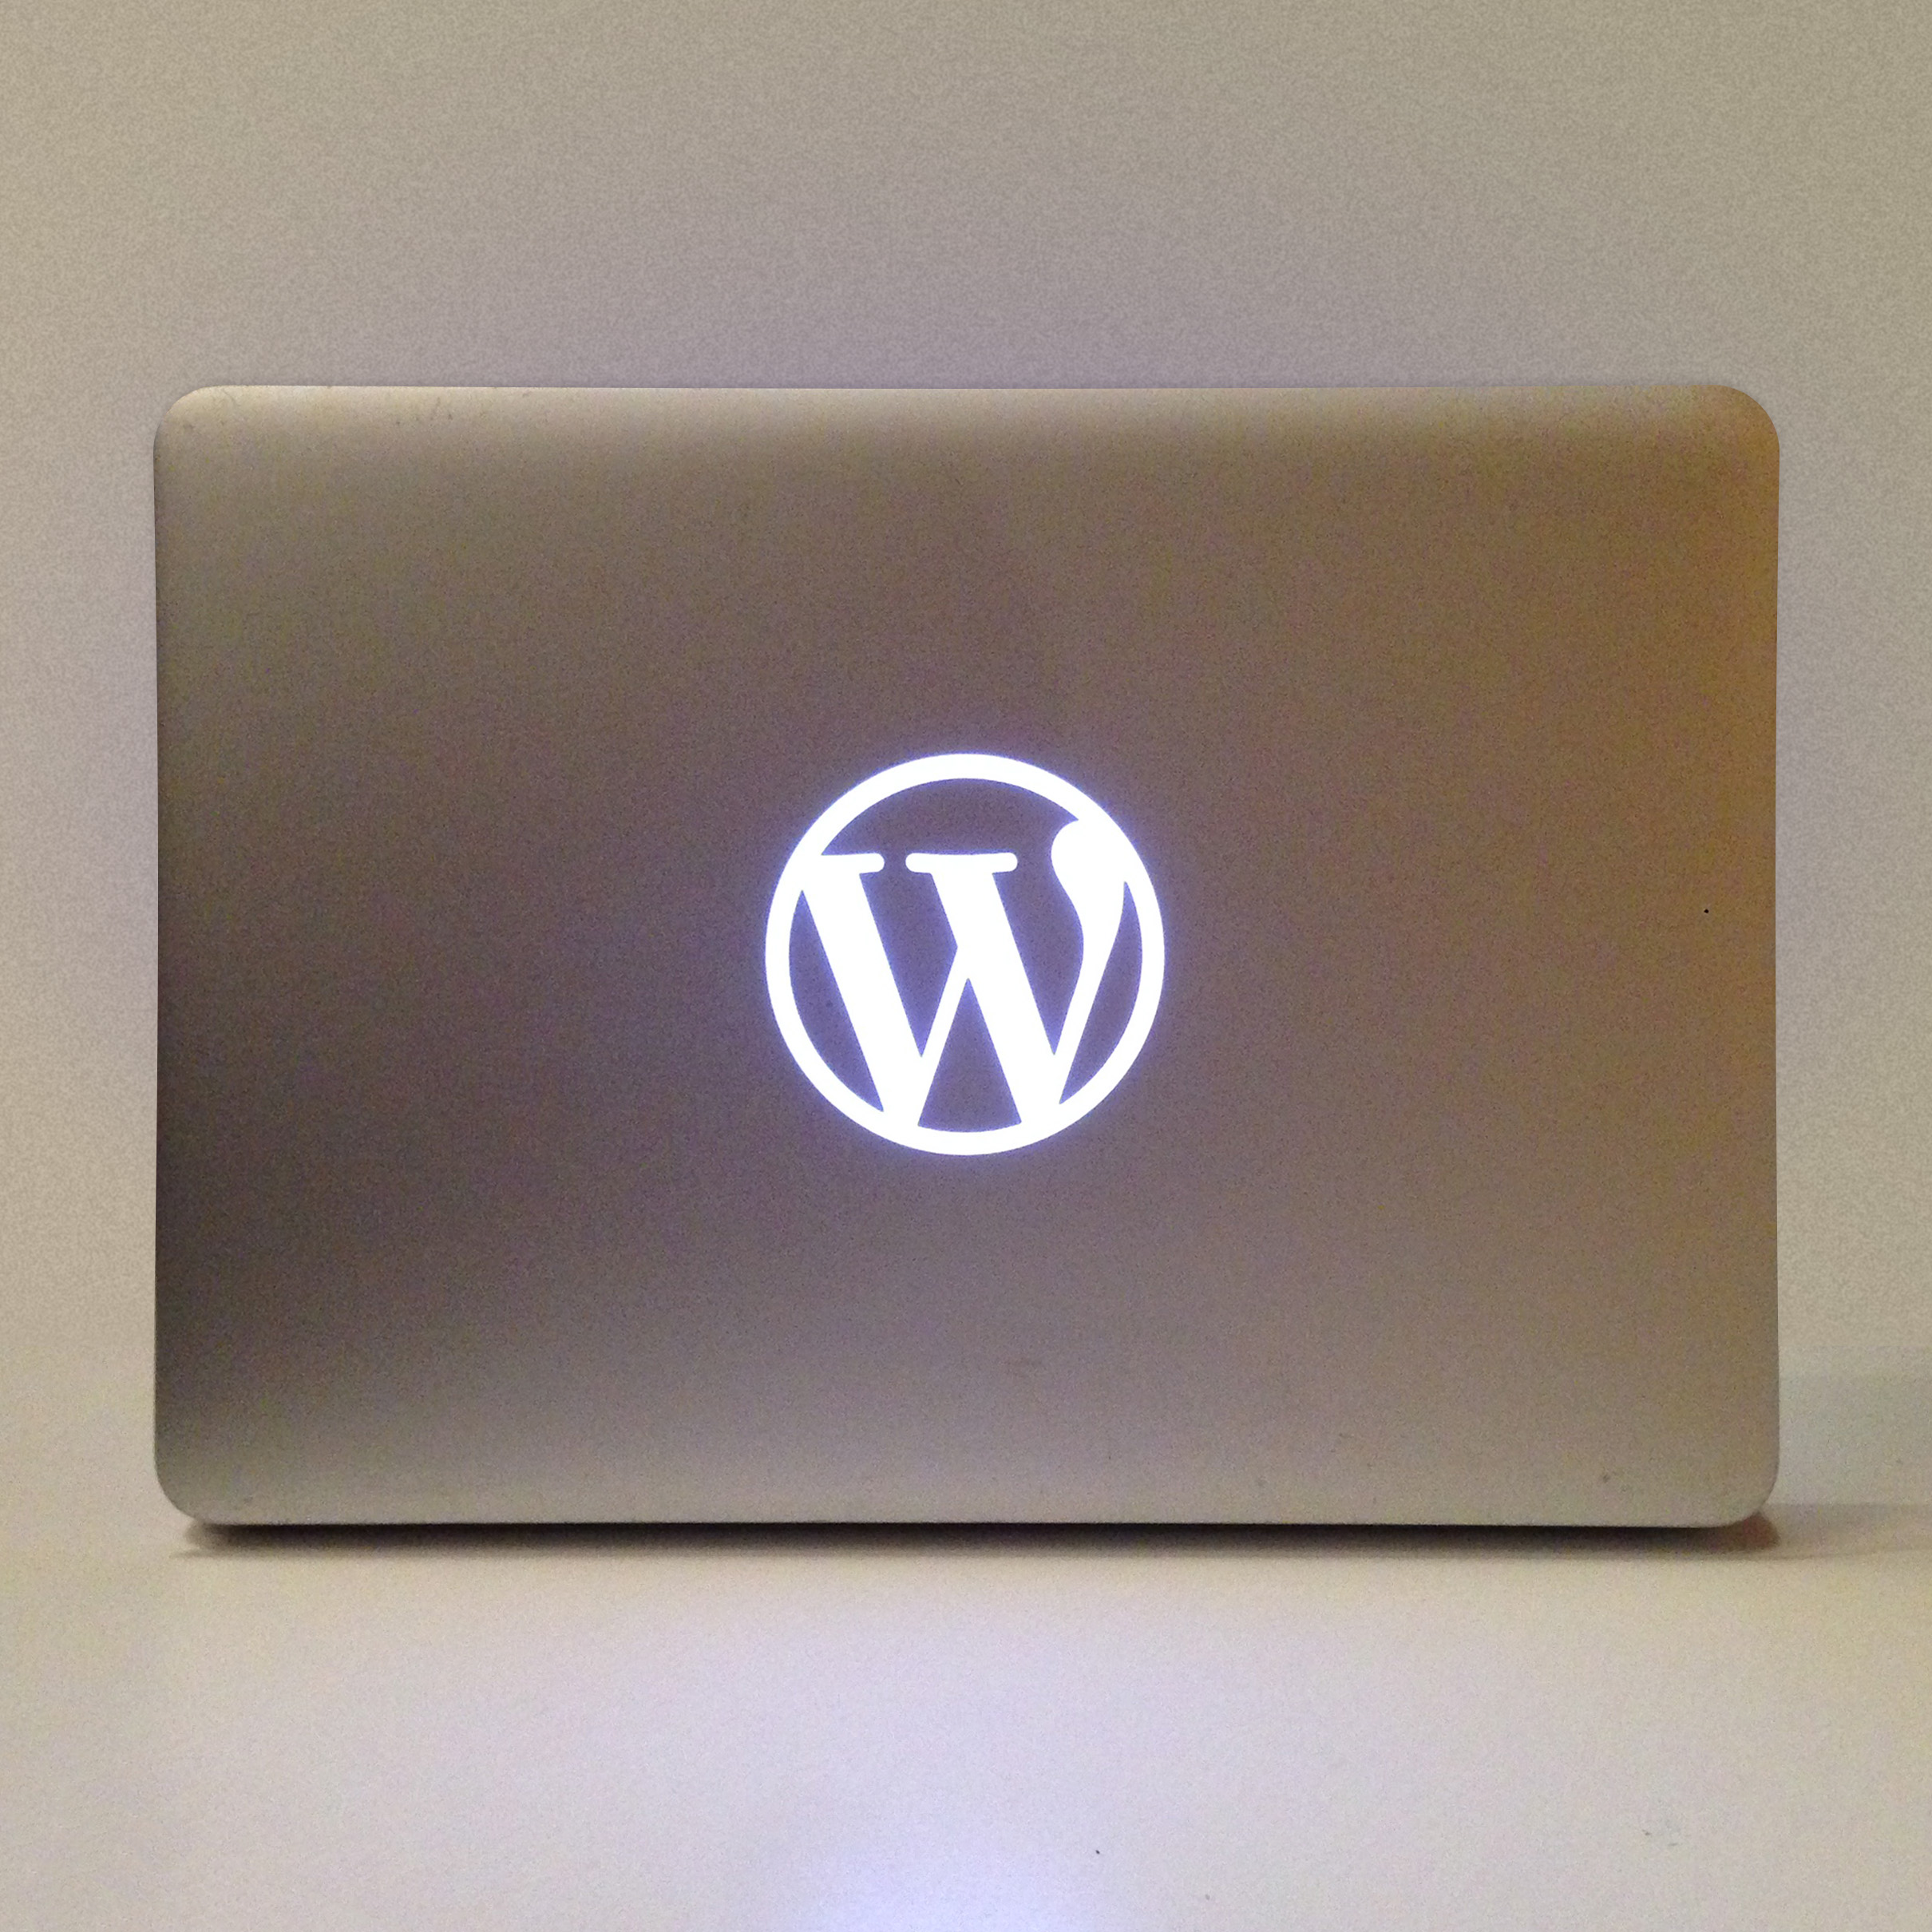 Photo of a customized Macbook Pro, 2012 edition, with the WordPress logo